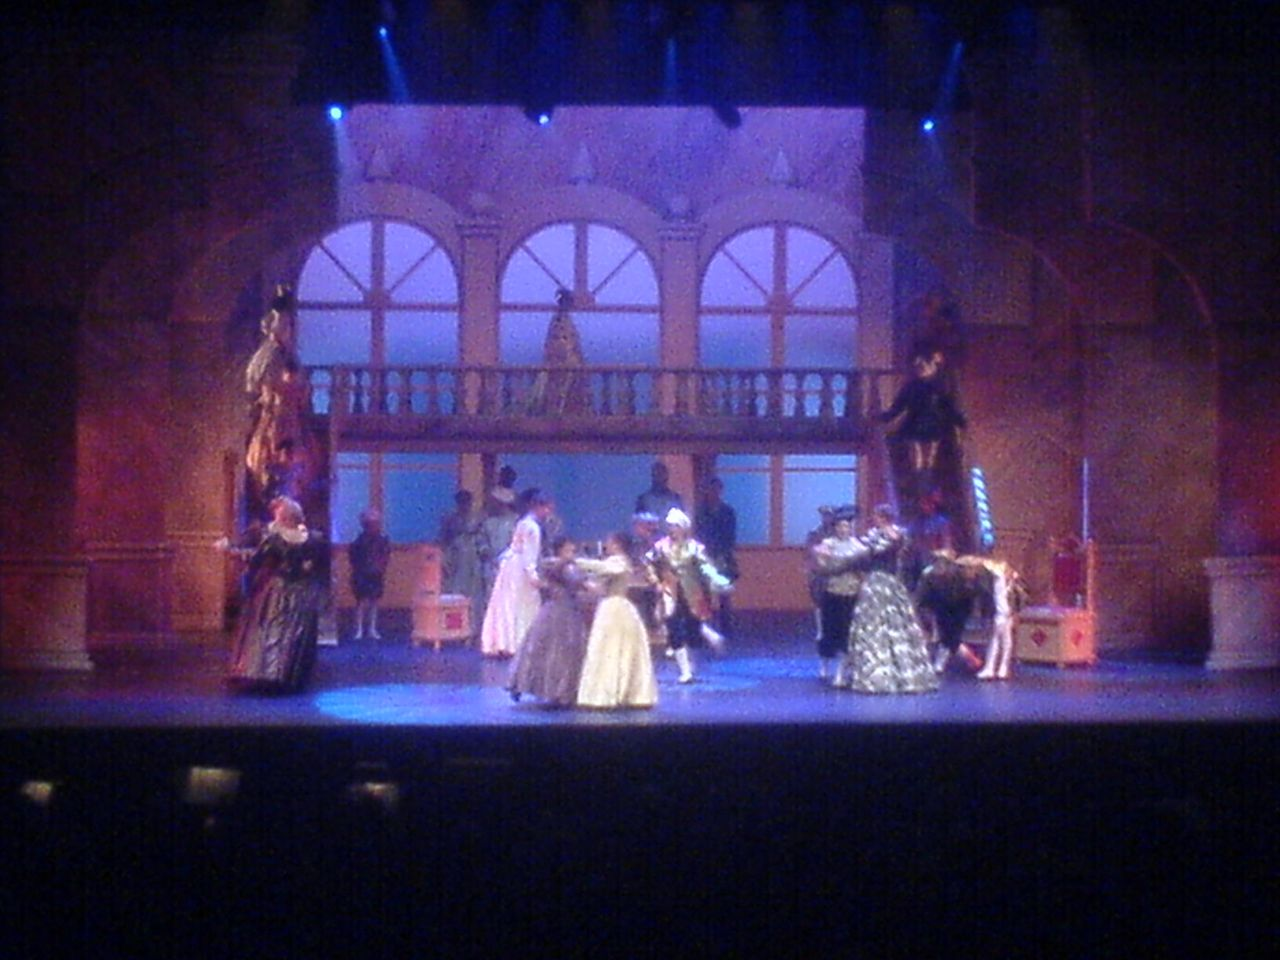 spectacle nocturnologie (12)